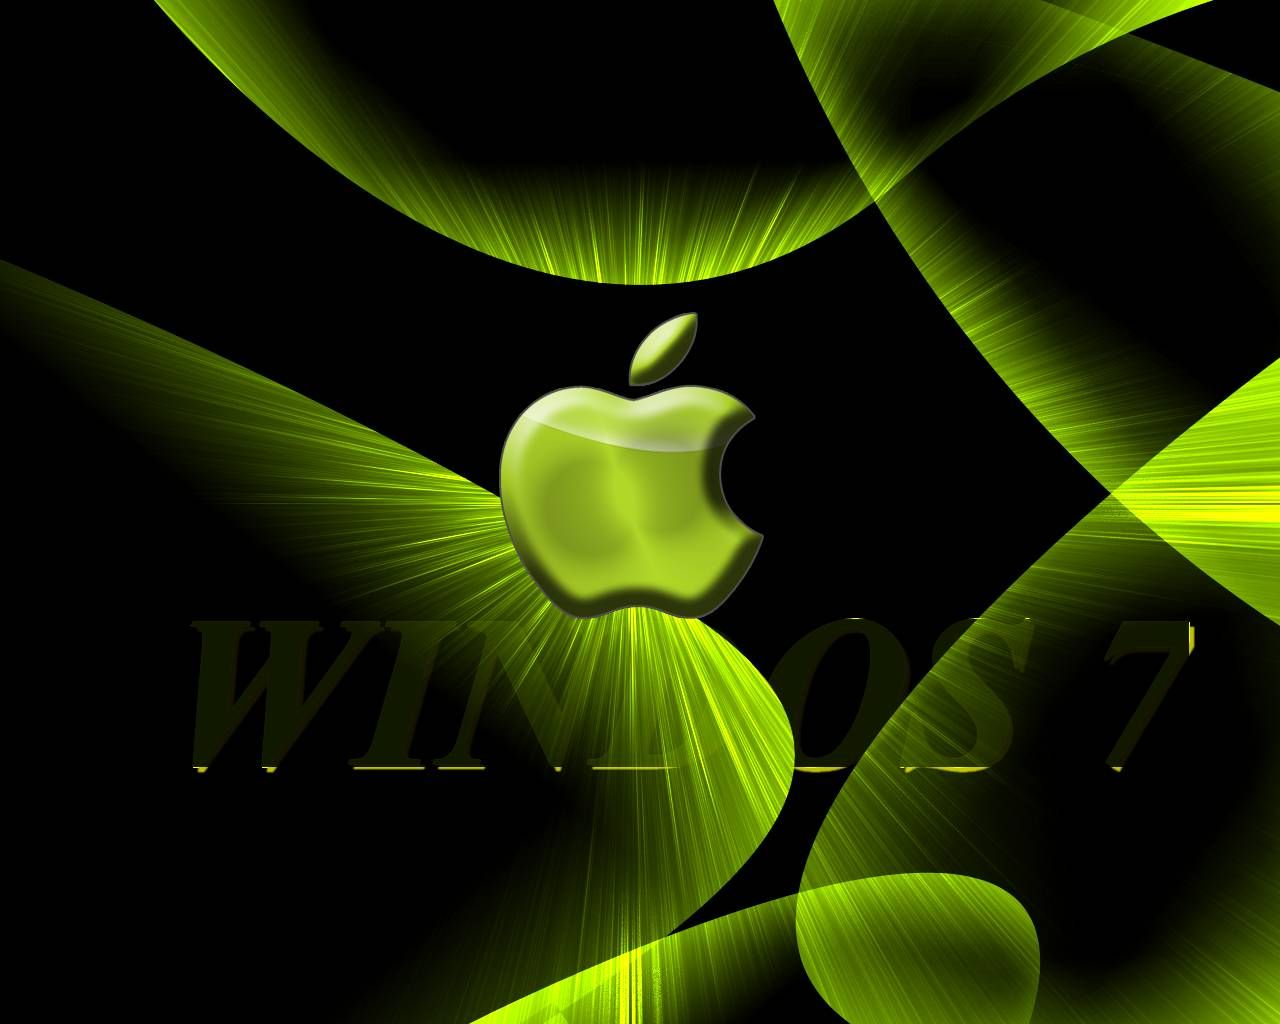 apple wallpaper hd free download | epic car wallpapers | pinterest